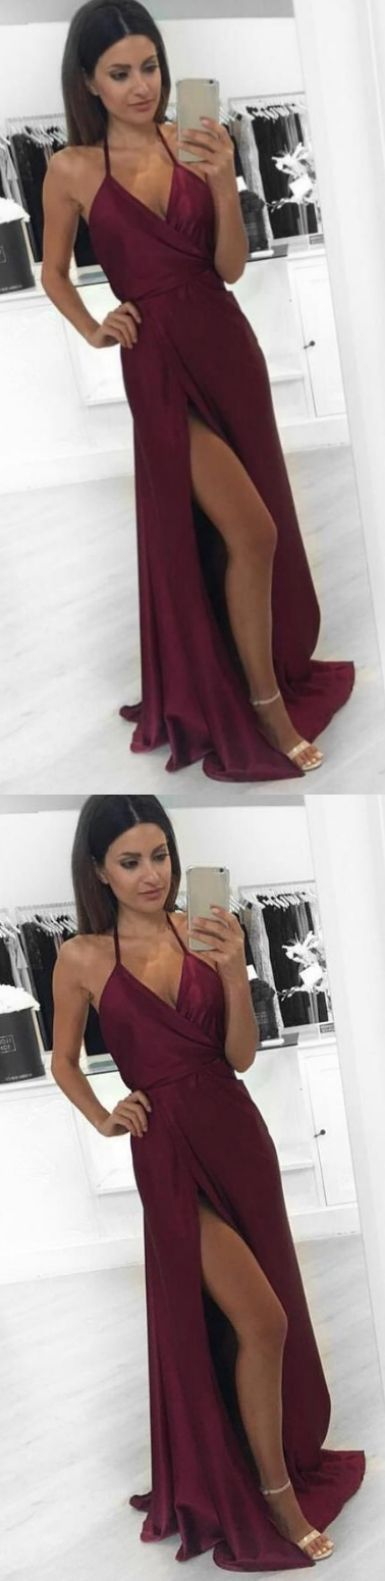 A line Prom Dresses, Burgundy Princess Prom Dresses, A-line Long Prom Dresses, Long Prom Dresses, Burgundy Prom Dresses, A-line/Princess Prom Dresses, Burgundy A-line/Princess Prom Dresses, A-line/Princess Long Prom Dresses, Simple Burgundy Plus Size Chea, Plus Size Dresses, Cheap Prom Dresses, Plus Size Prom Dresses, Prom Dresses Cheap, A Line dresses, Cheap Plus Size Dresses, Plus Size Dresses Cheap, Simple Prom Dresses, Cheap Plus Size Prom Dresses, Prom Dresses Plus Size, Plus Size...